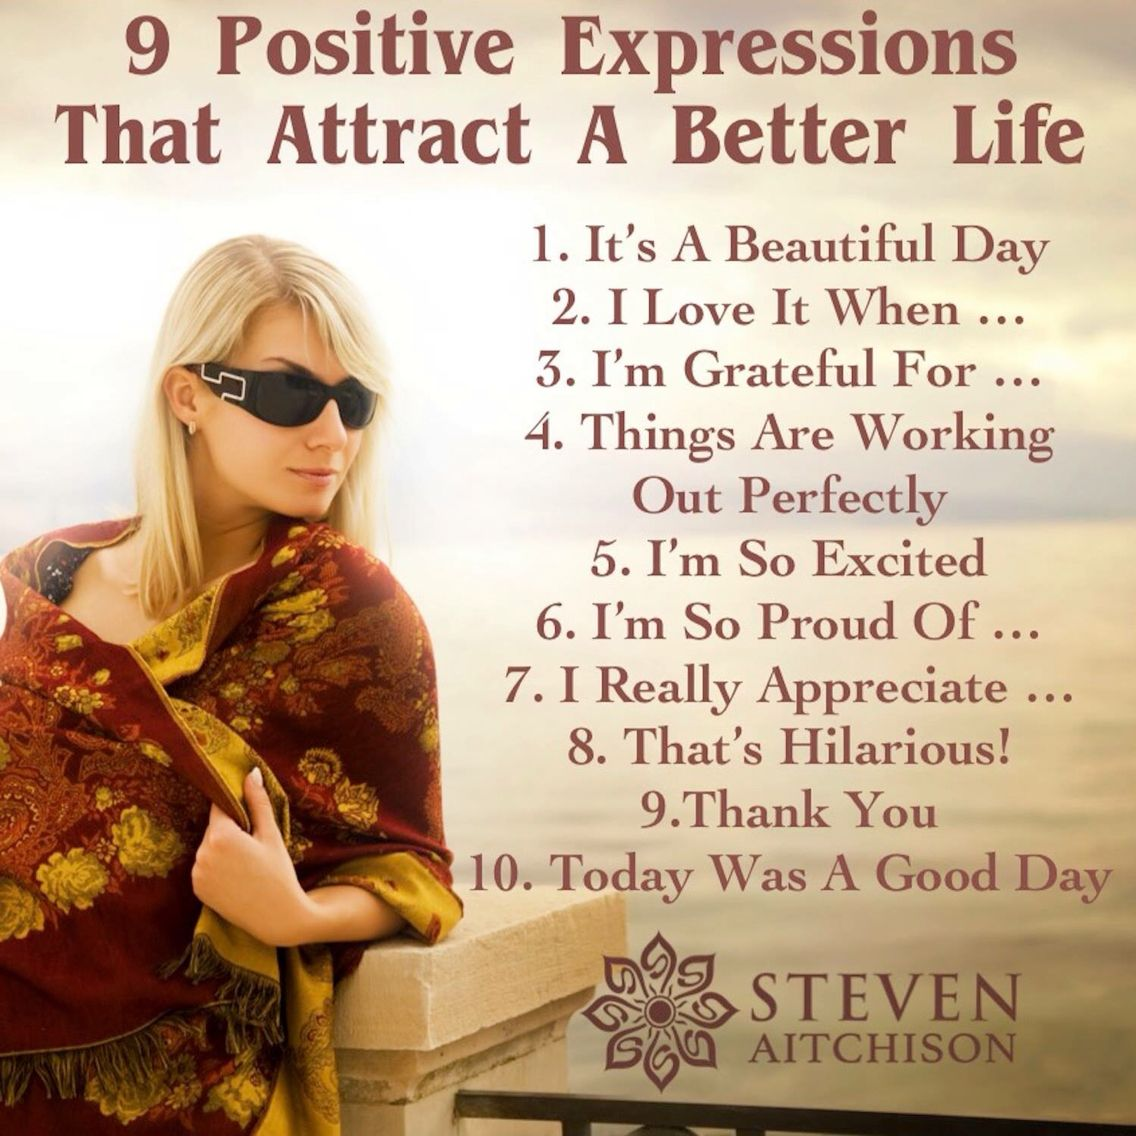 Famous Quotes About Life Lessons Pinkristy Lee On Stress Less  Pinterest